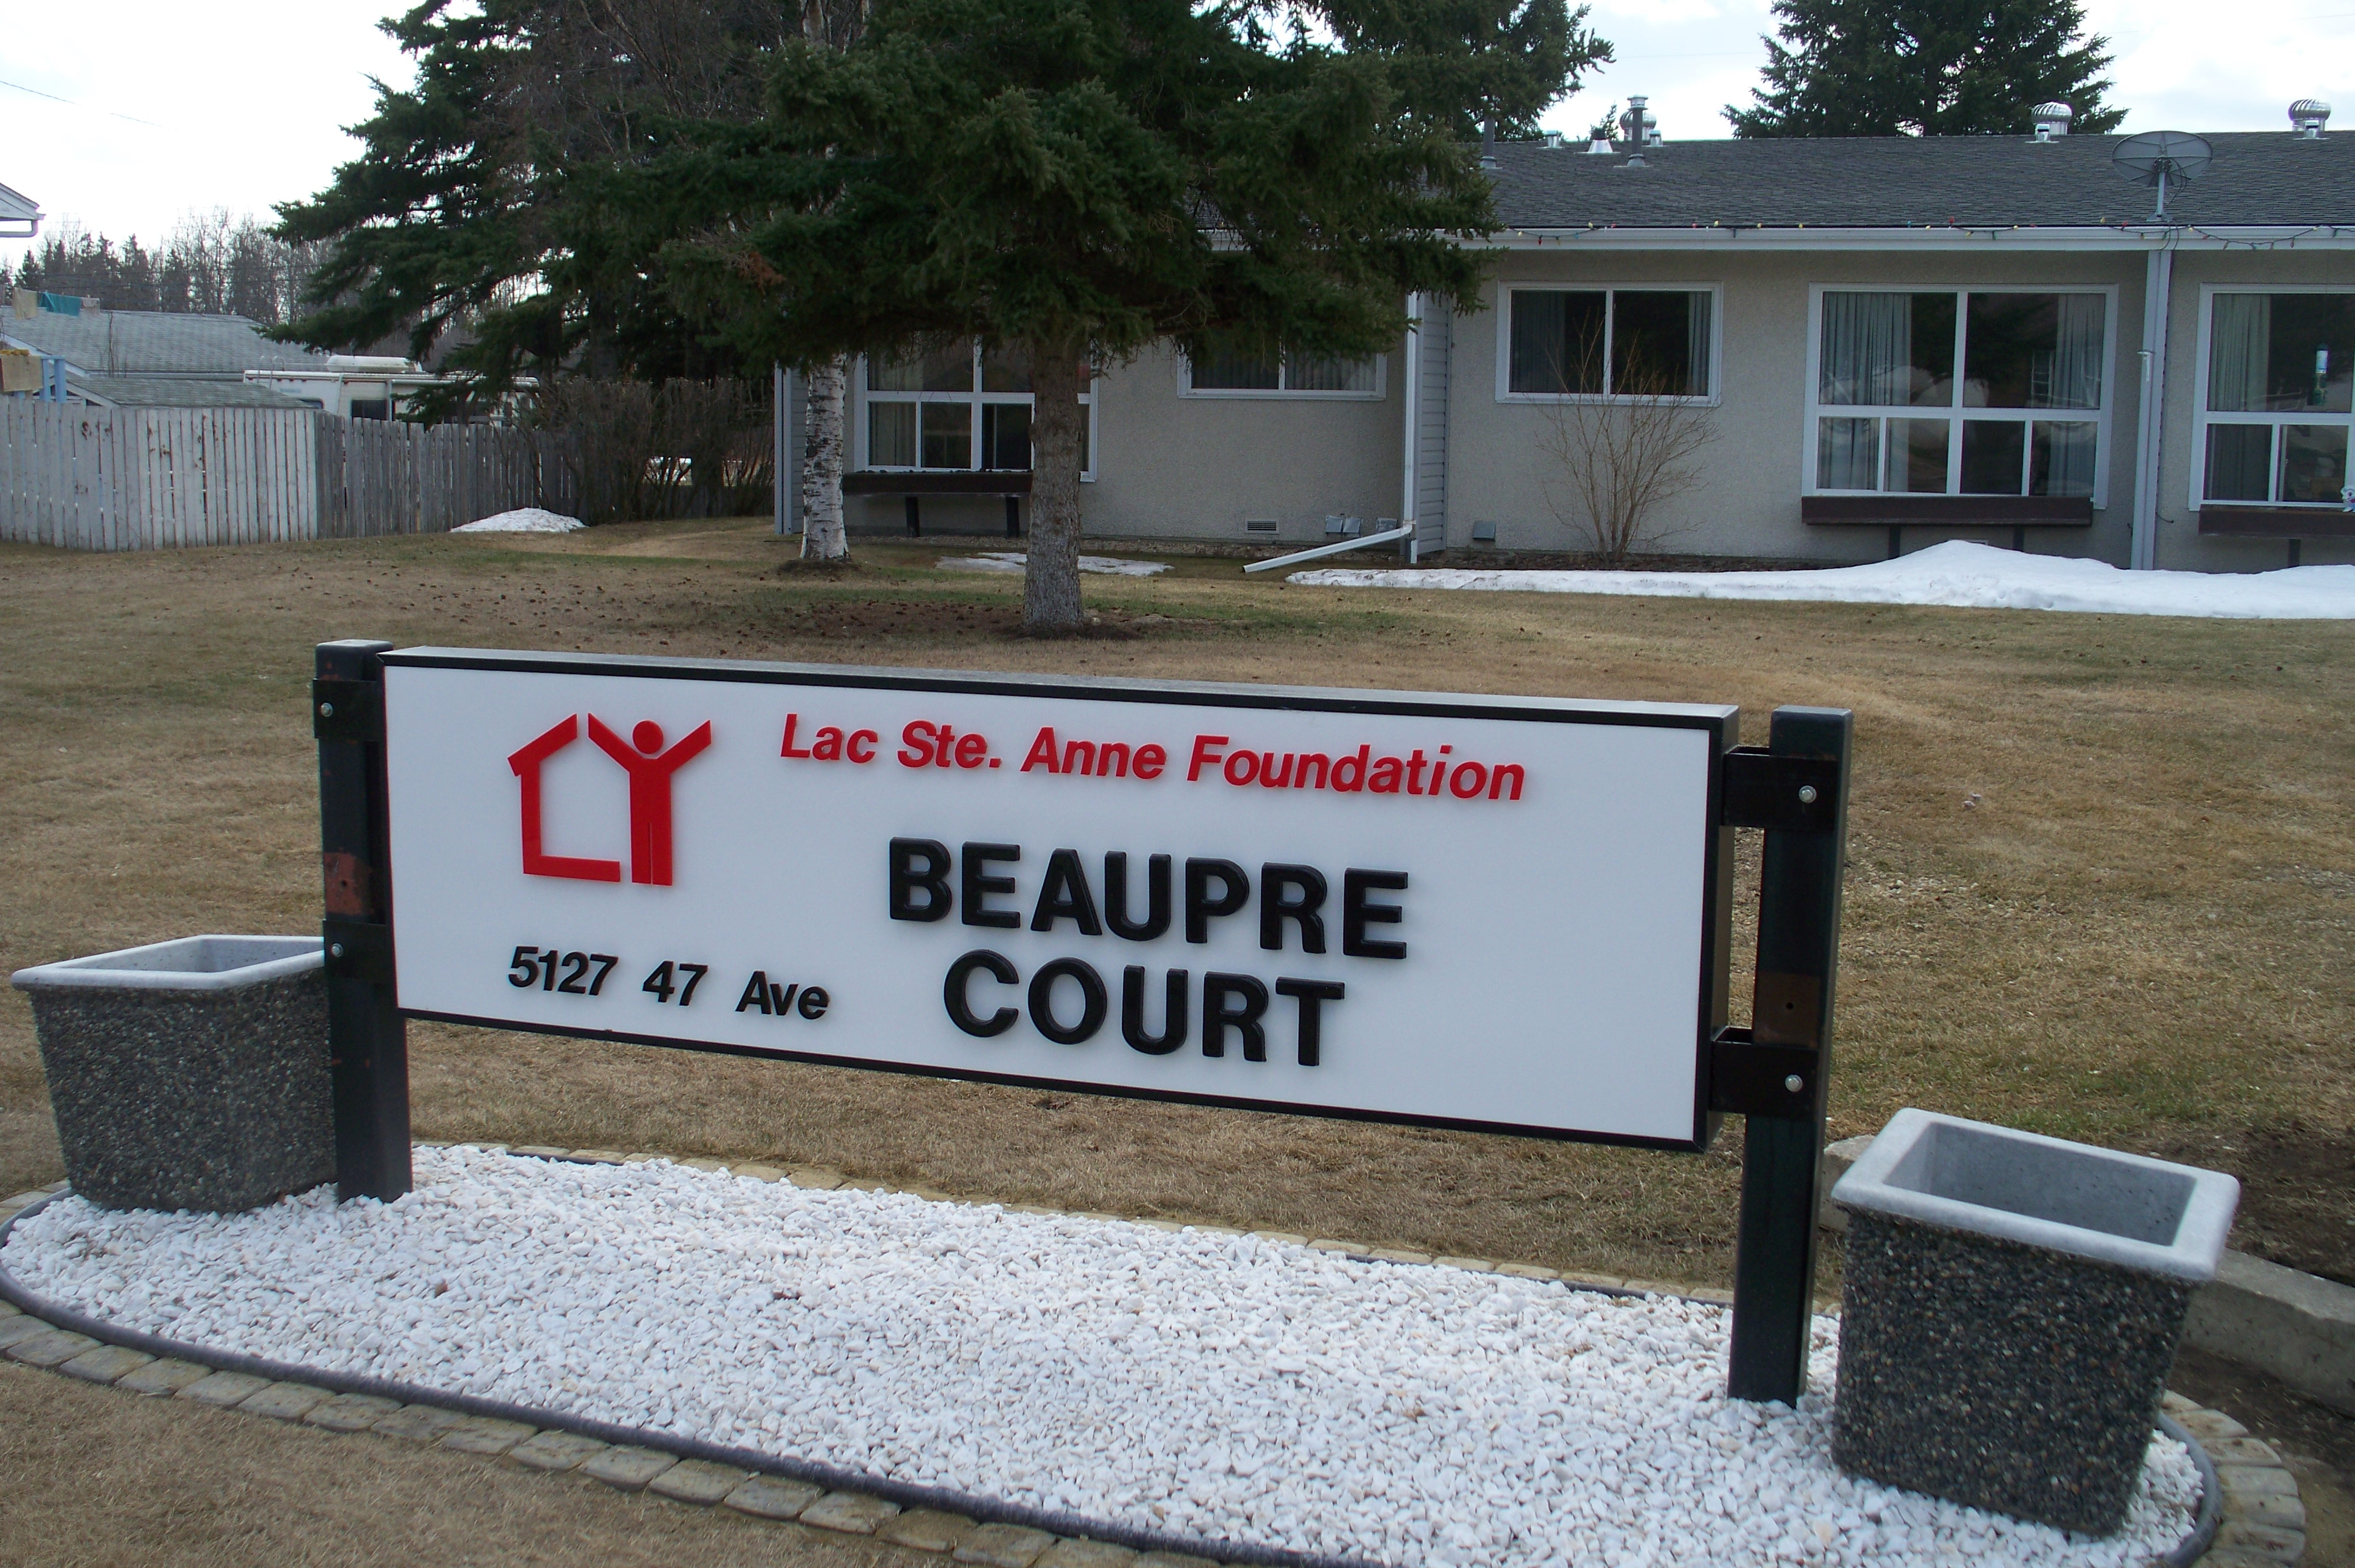 Beaupre Court